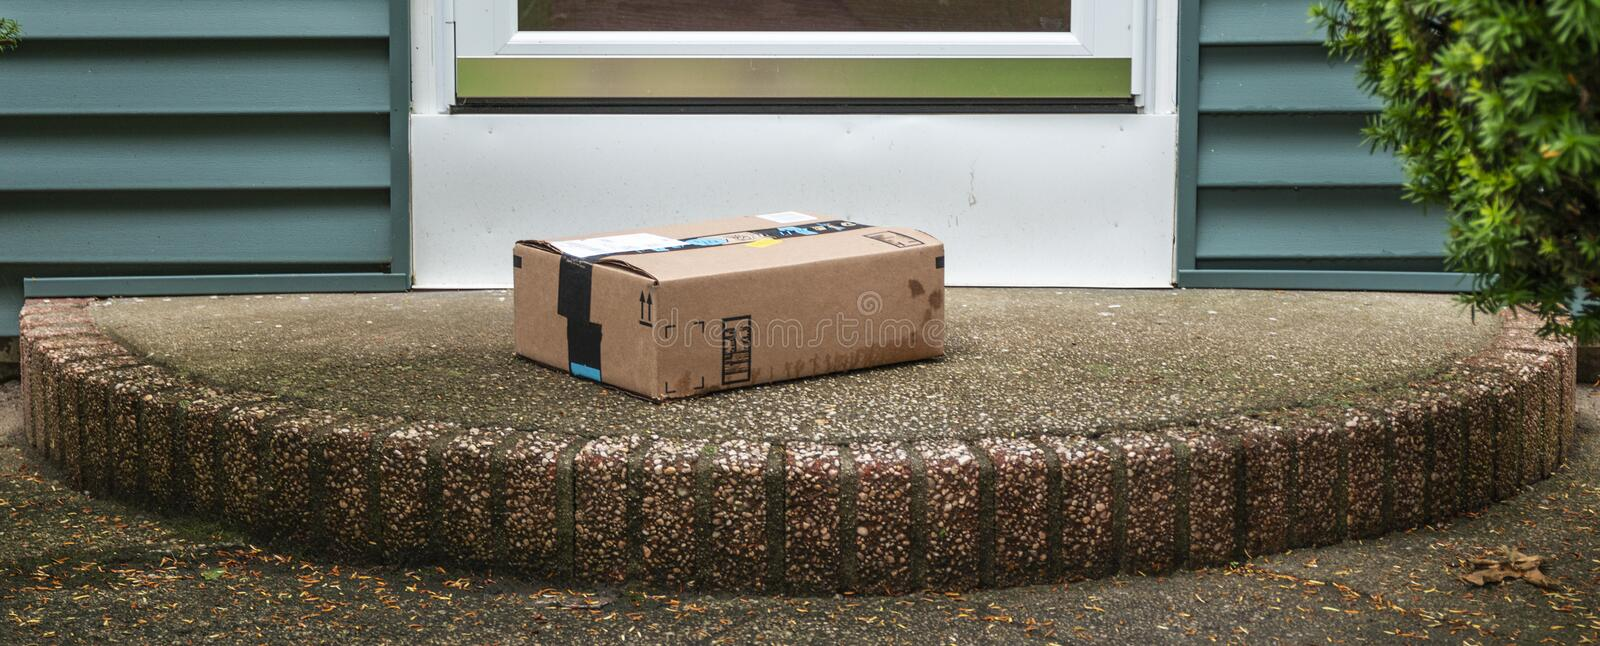 Package left on porch in the rain stock photos